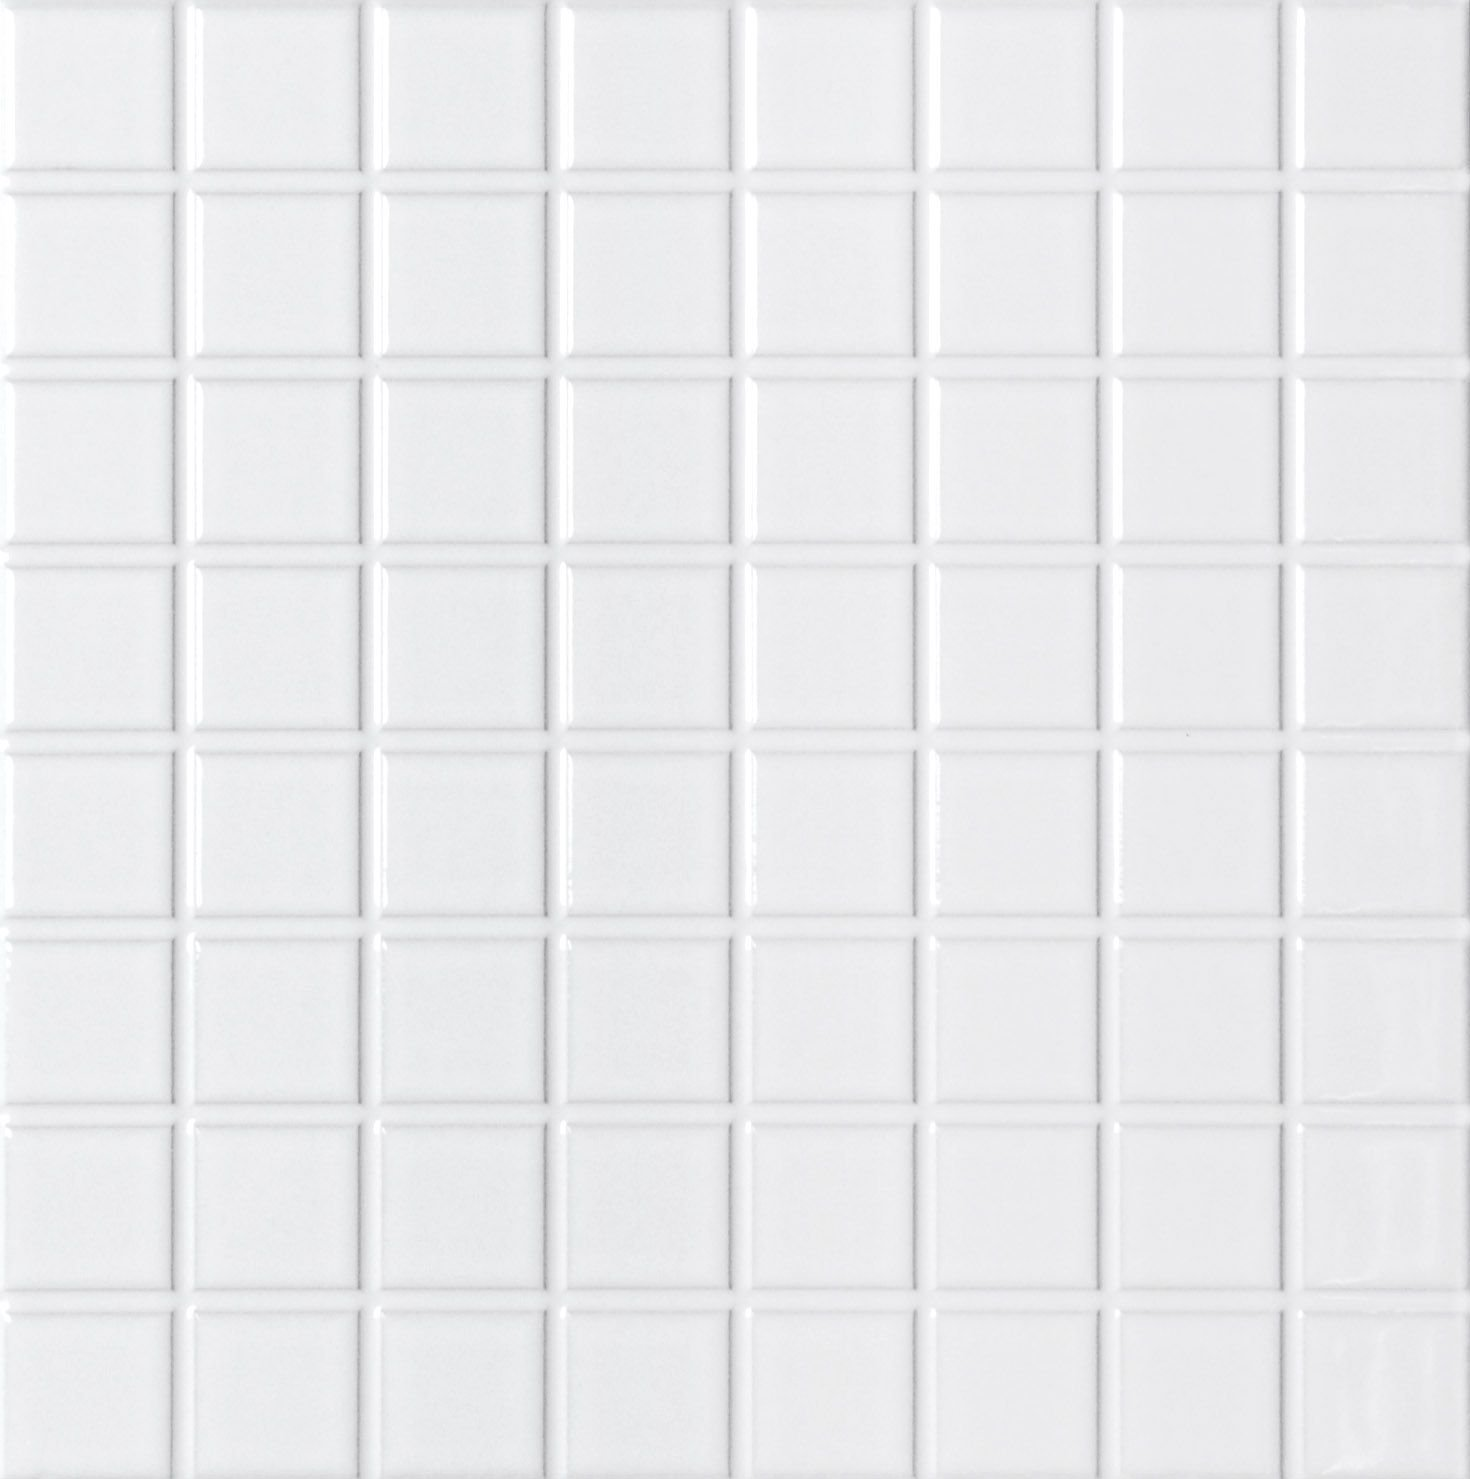 carrelage blanc 20x20 pas cher On carrelage 20x20 blanc